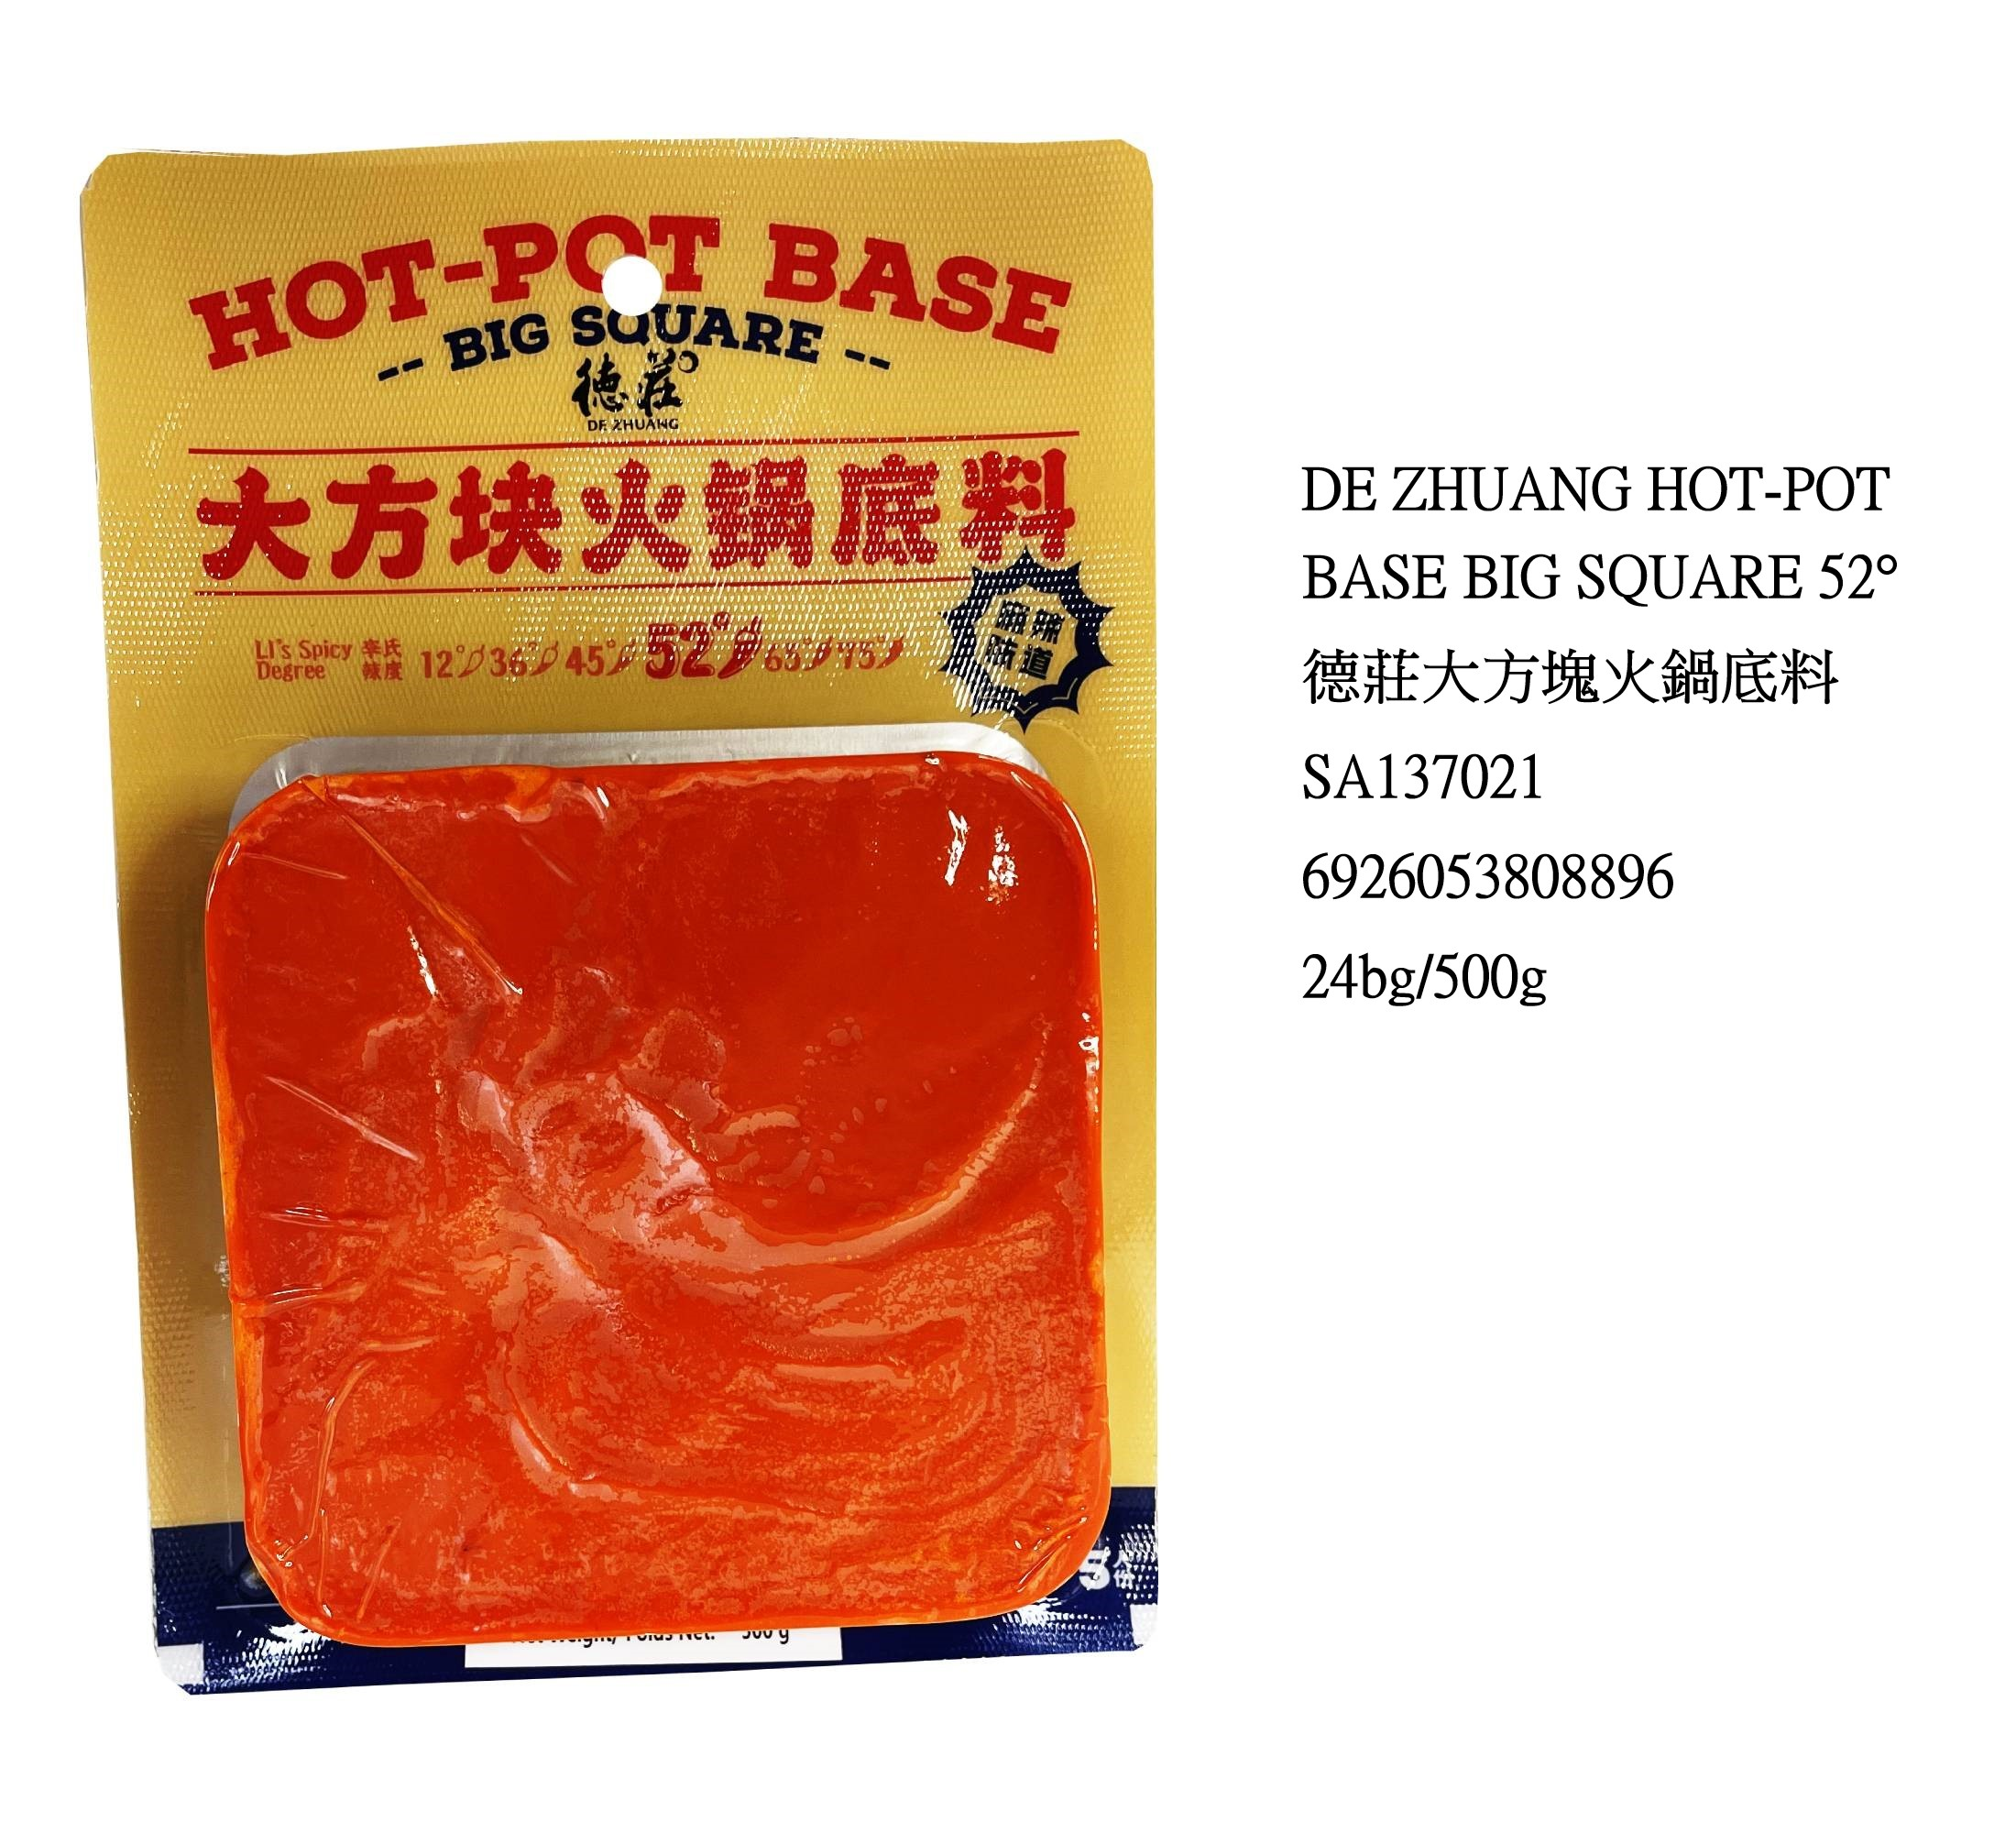 DZ HOT-POT BASE BIG SQUARE 52° SA137021